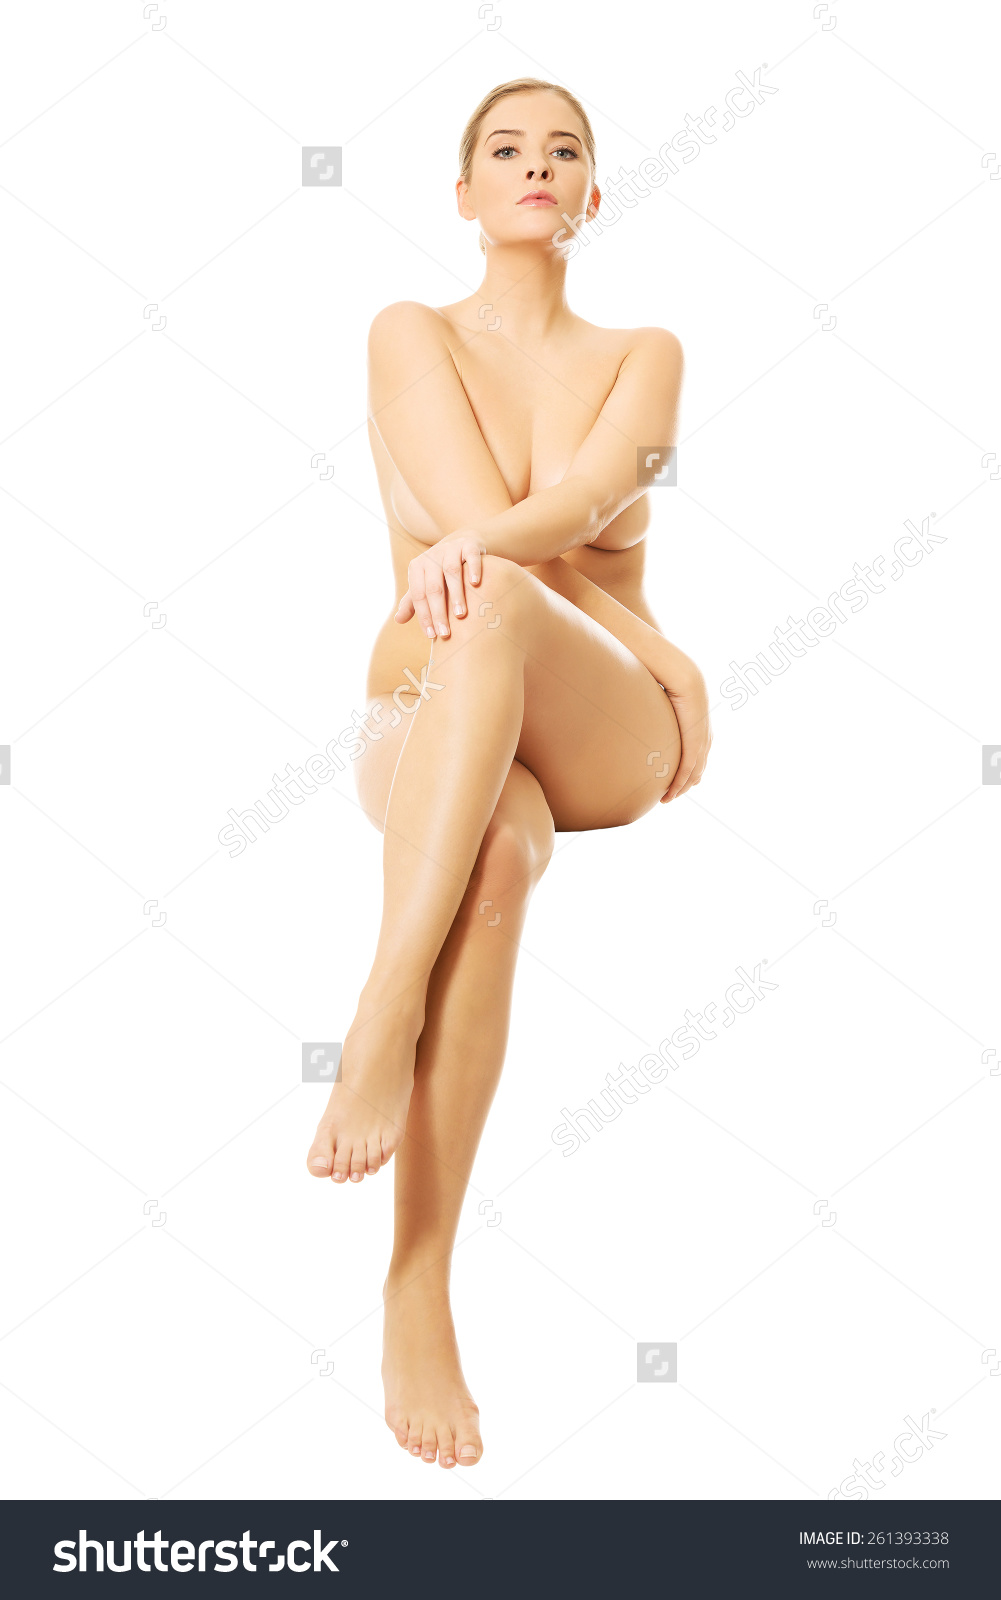 Nude Woman Sitting On Something Invisible.jpg